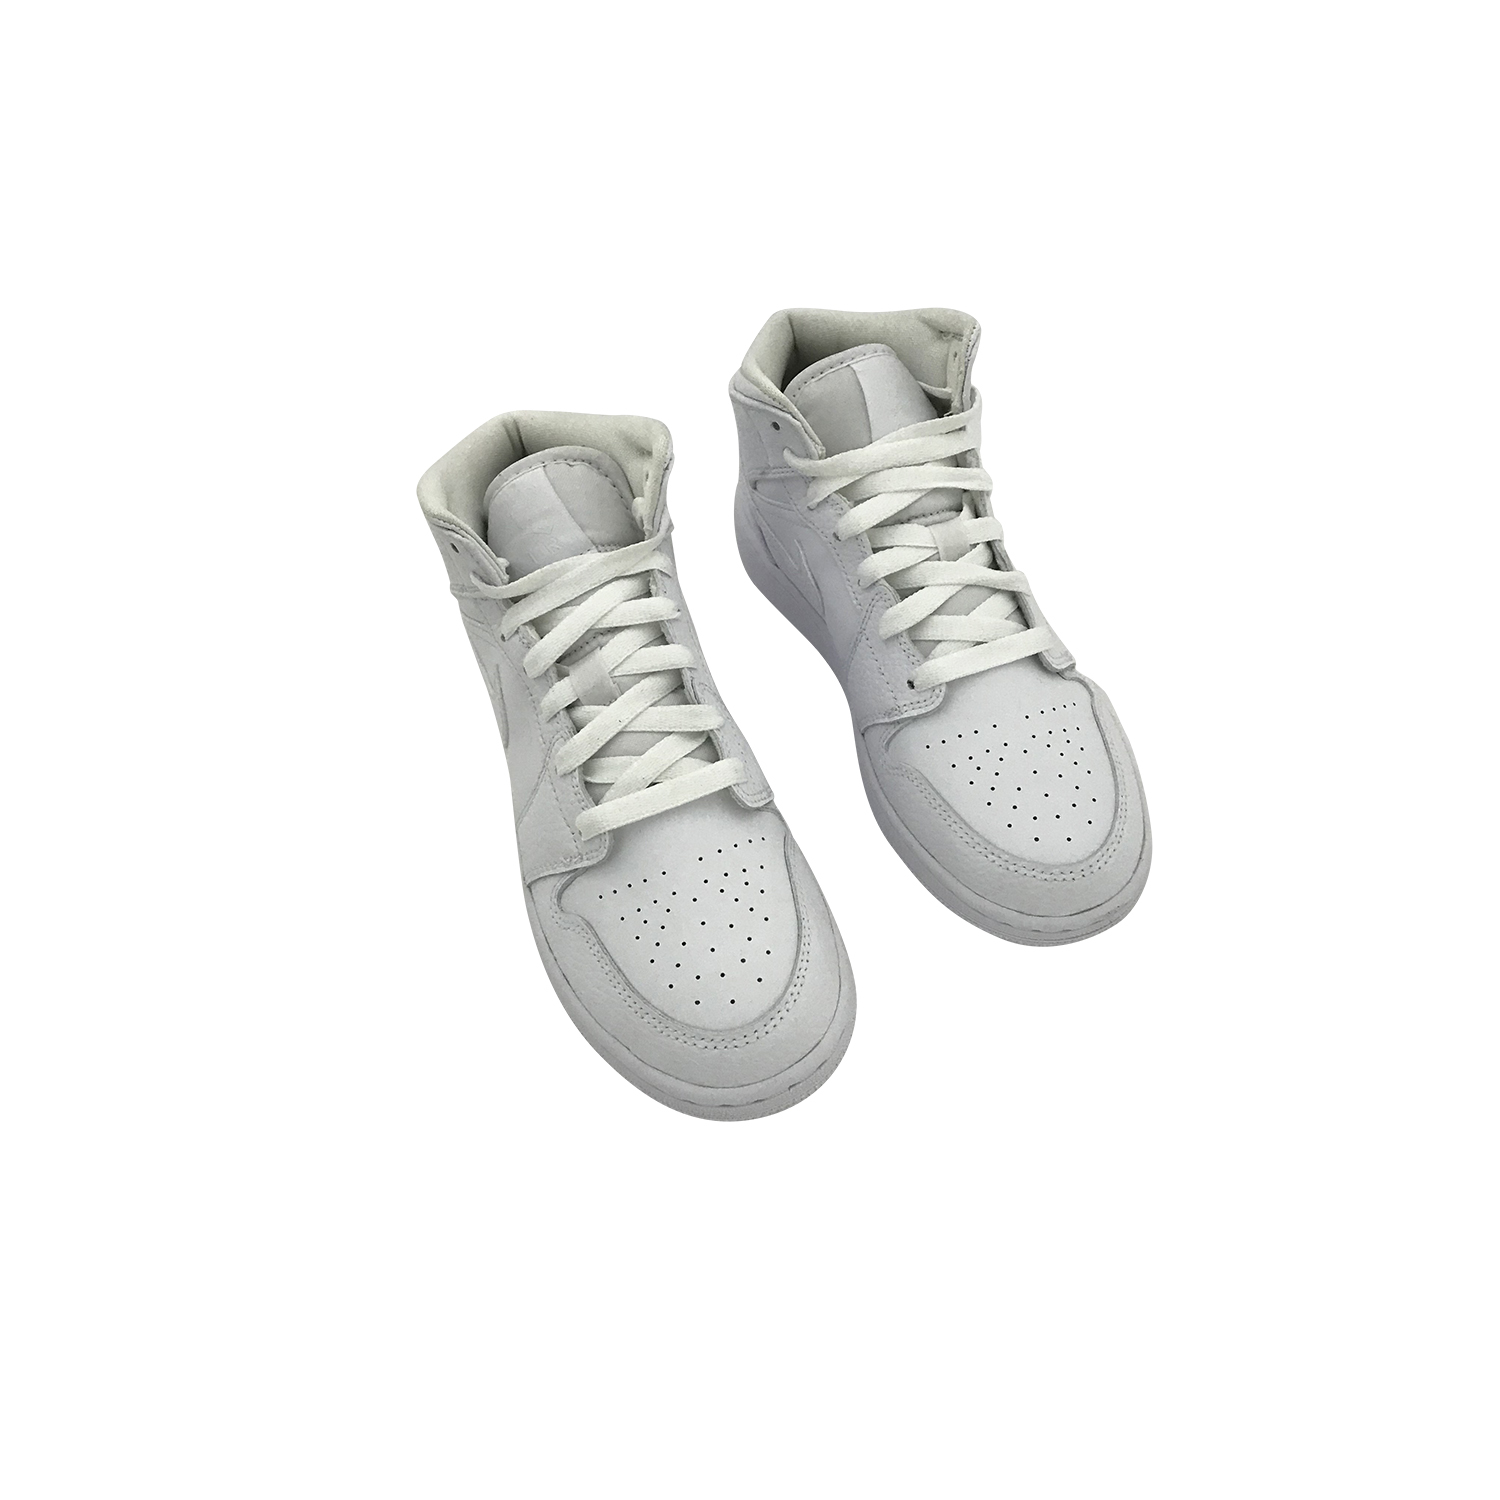 NIKE AIR JORDAN 1 MID WHITE 554725 130